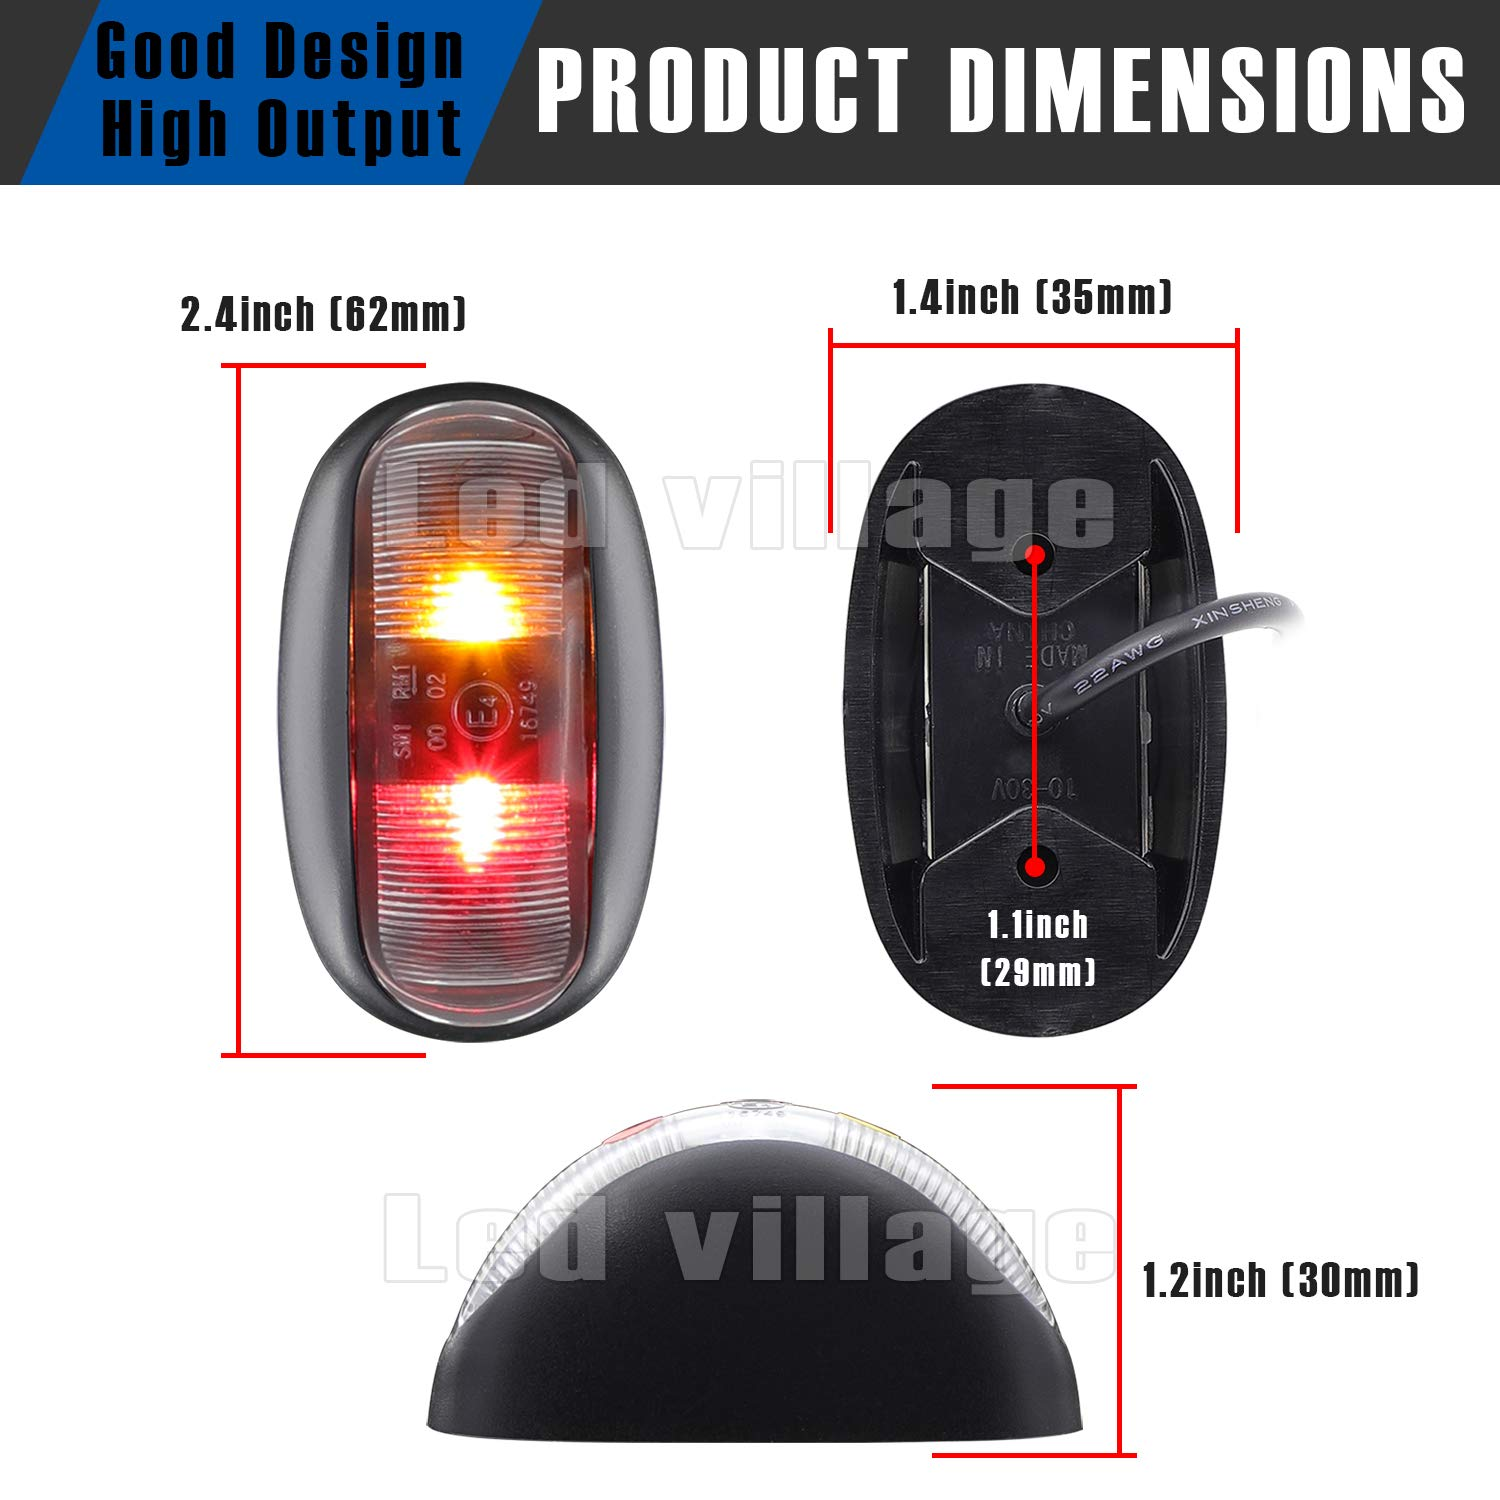 LedVillage 2.4 Inch Amber//Red LED Side Marker Indicator Lights F3 Piranha 2 Diodes Universal for Pickup Bus Lorry Trailer RV Cab Truck ATV Camper MPV 12V 24V DC Ultra Bright Power Save MA Pack of 10